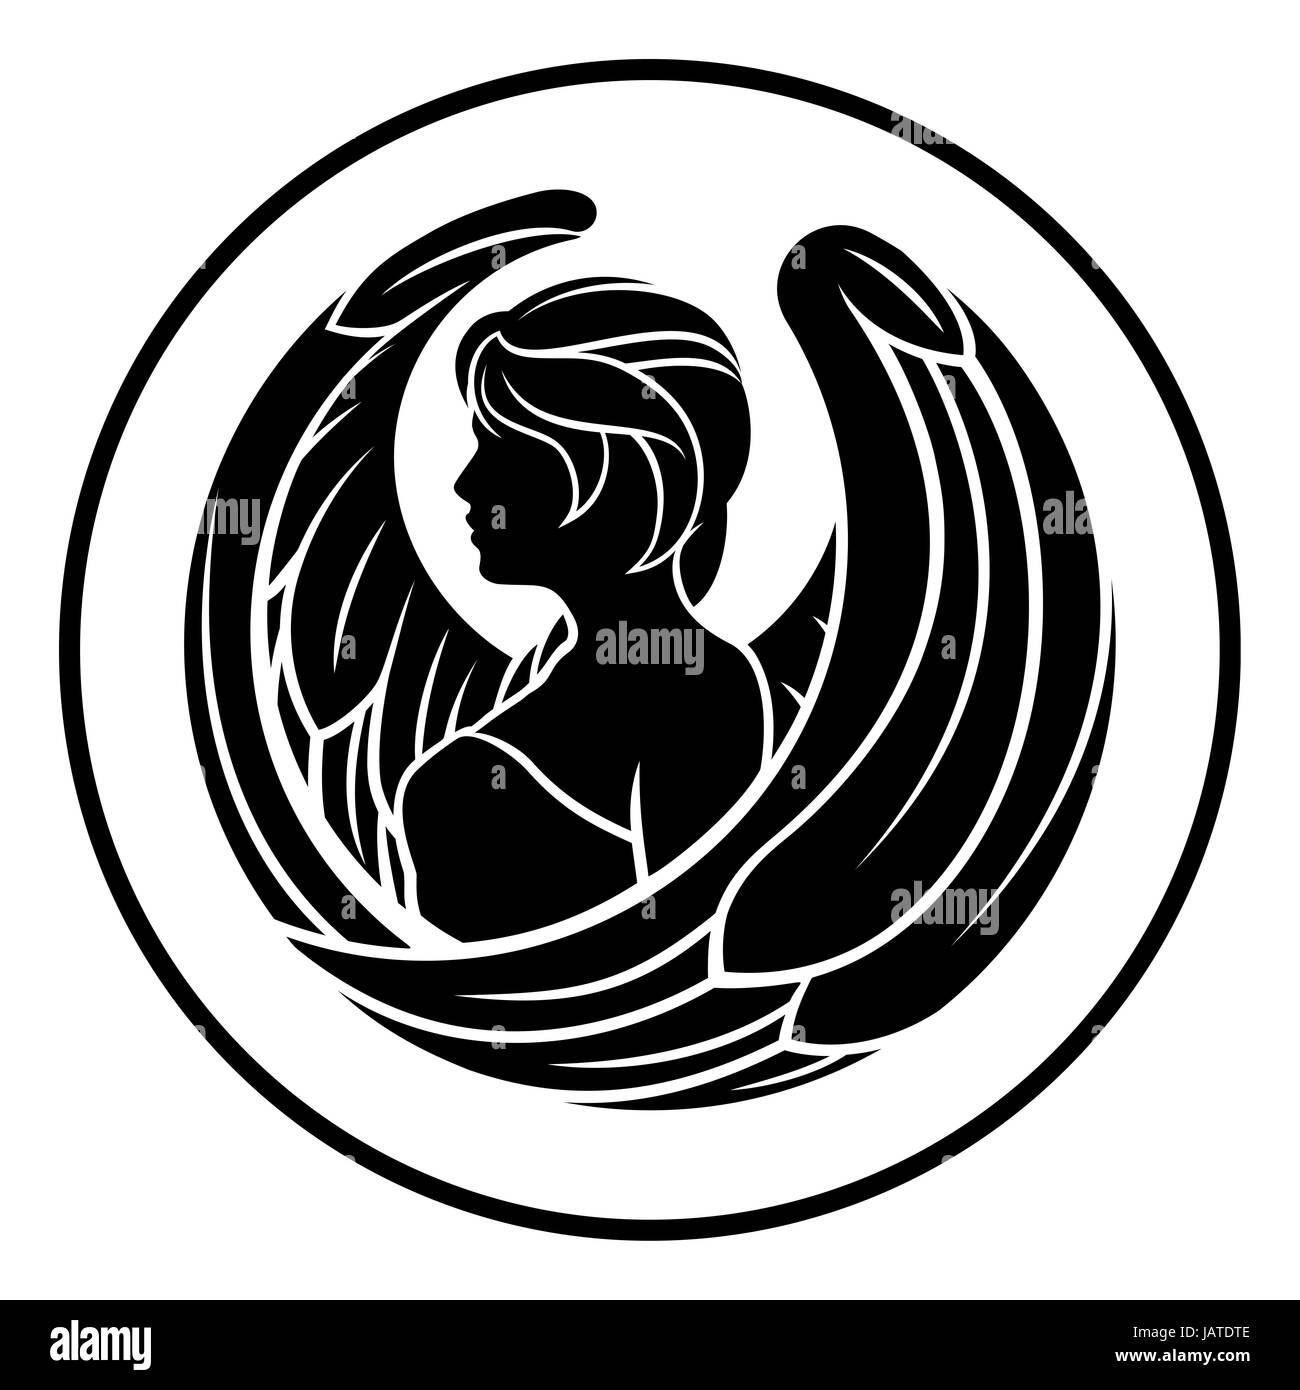 Astrology zodiac signs circular virgo angel horoscope symbol stock astrology zodiac signs circular virgo angel horoscope symbol buycottarizona